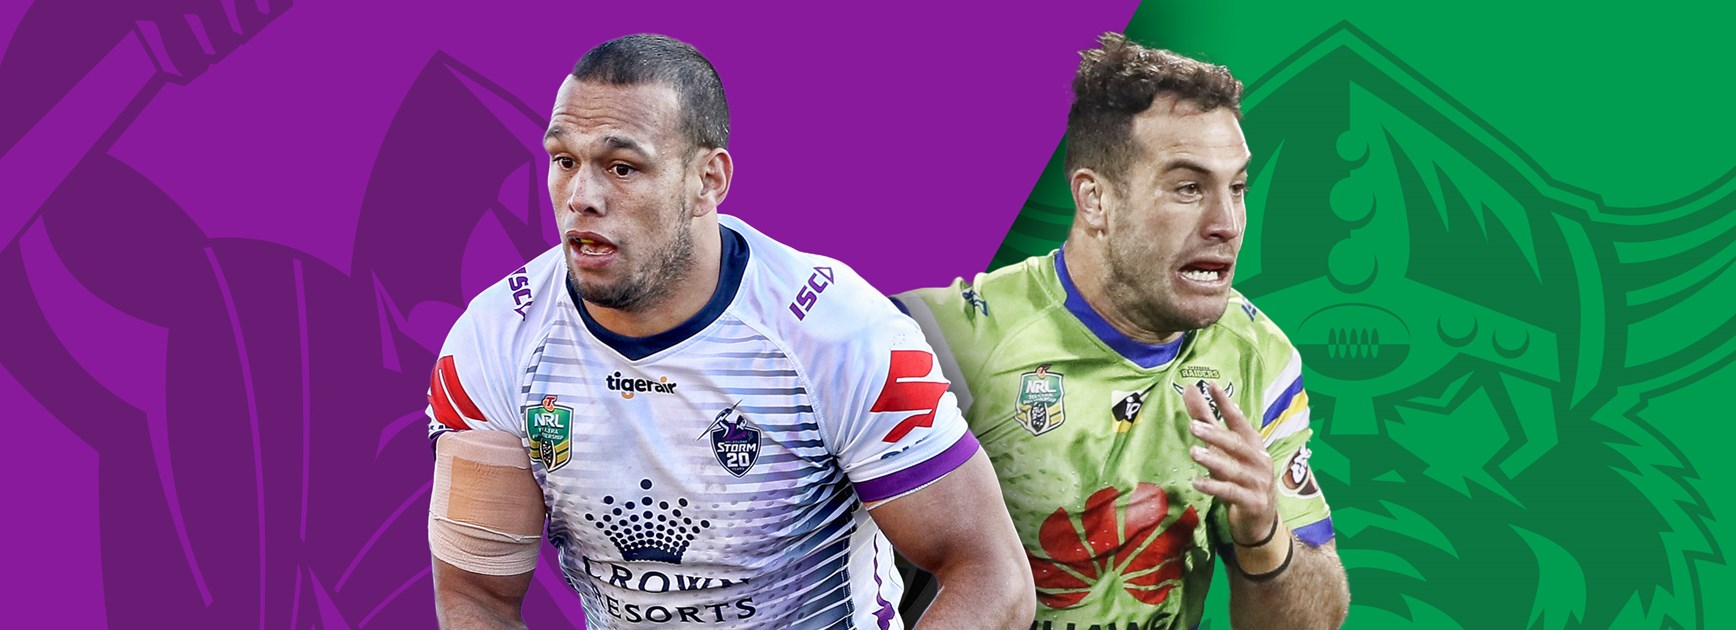 Storm v Raiders: Bromwich to start, mass changes for Raiders